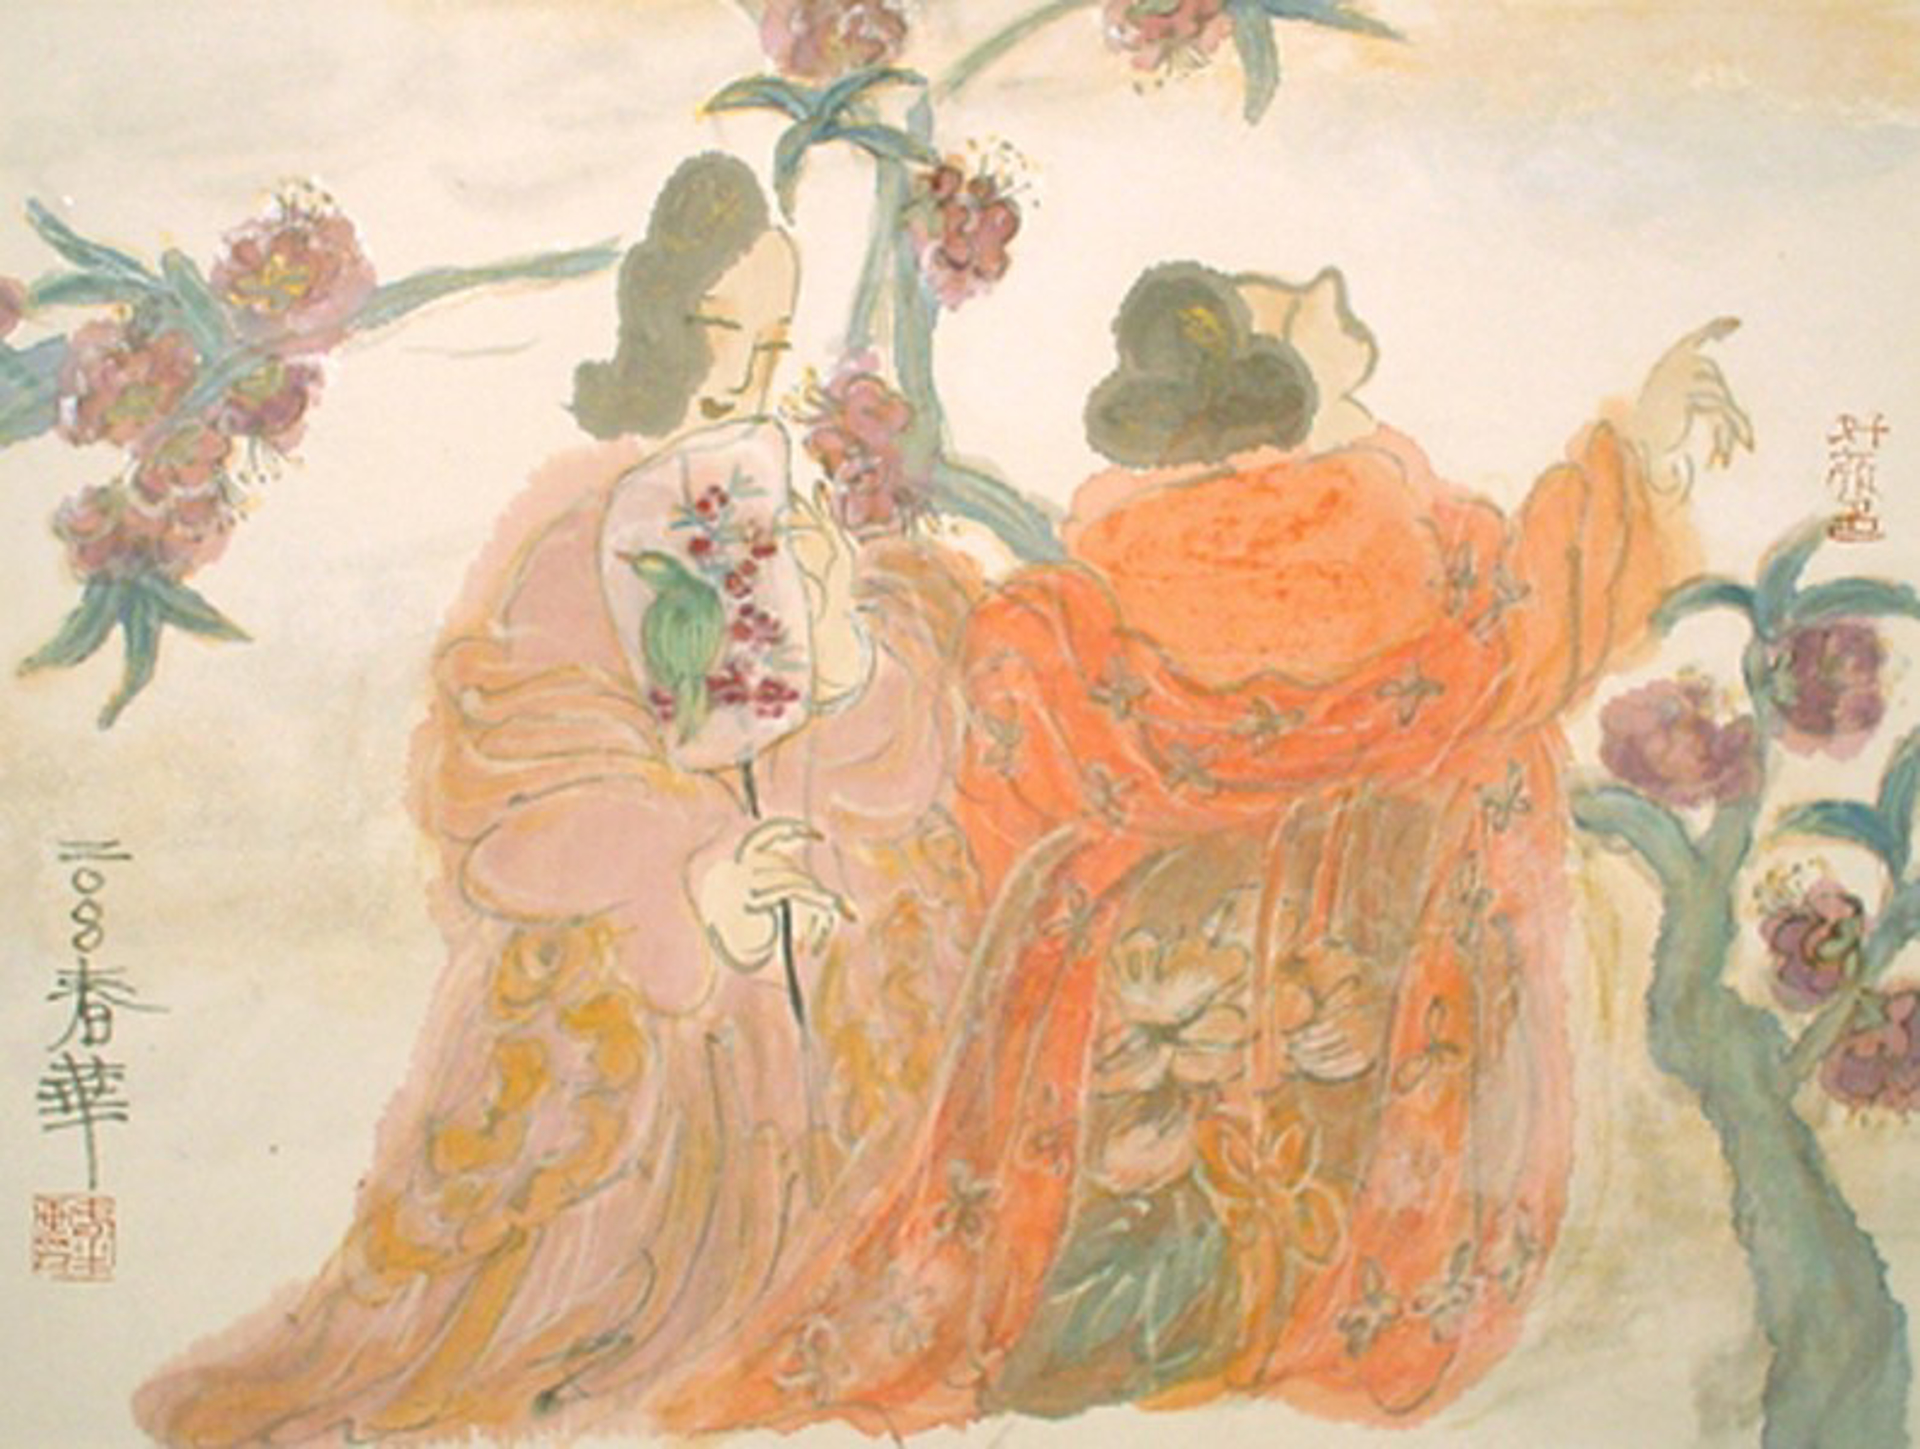 A Moment in a Spring Day #8 by Contemporary Chinese Art